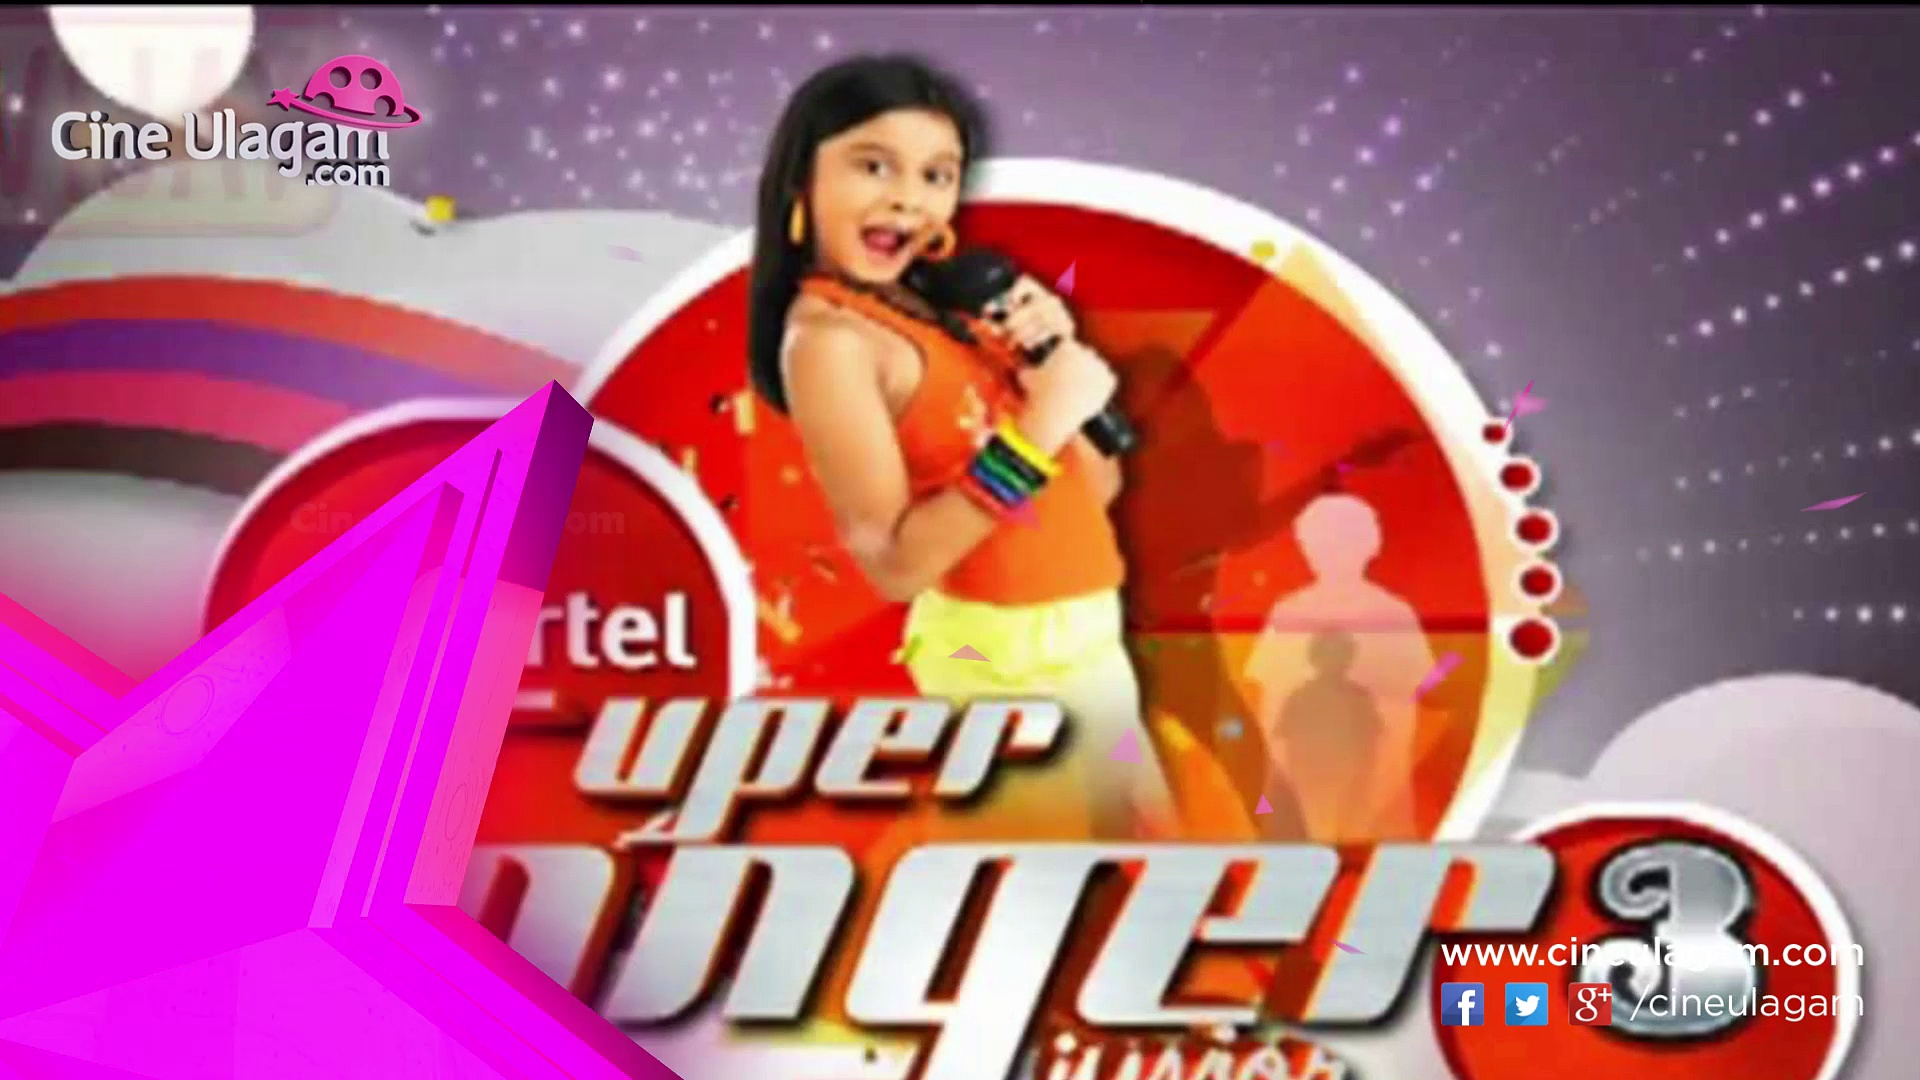 Child Welfare Organisations raises Issues against 'Super Singer'